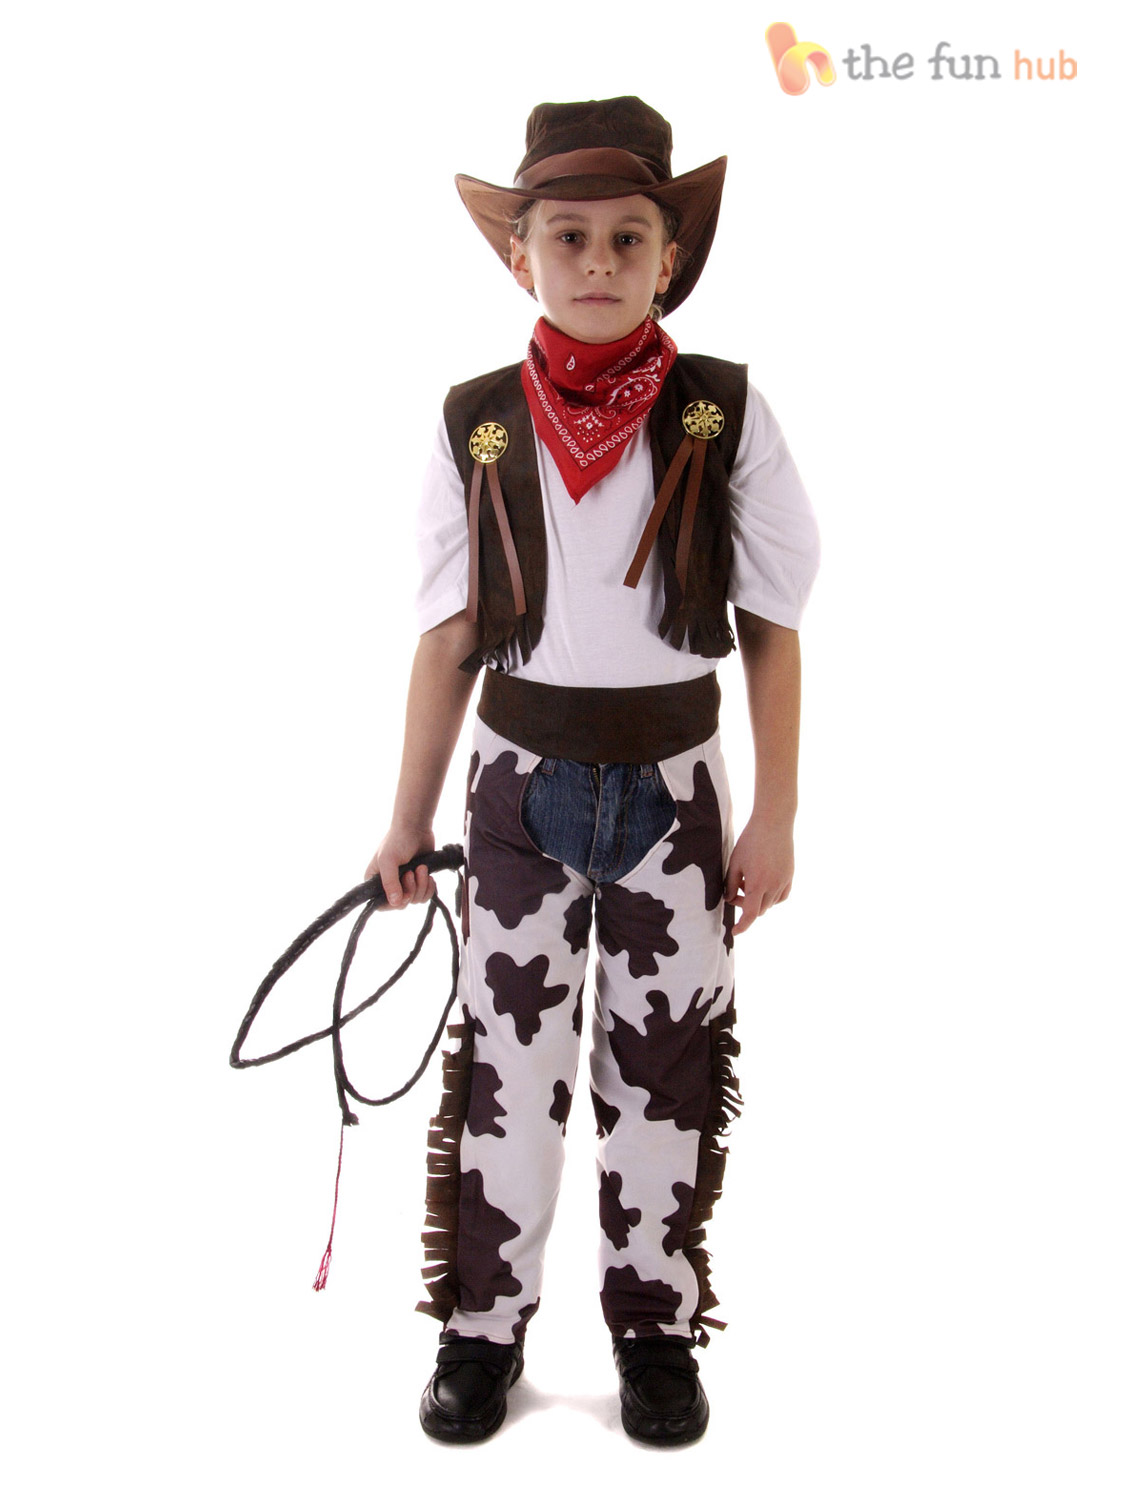 Boys-Kids-Cowboy-Outfit-Fancy-Dress-Costume-Rodeo-Wild-West-Age-3-4-5-6-7-8-9-10